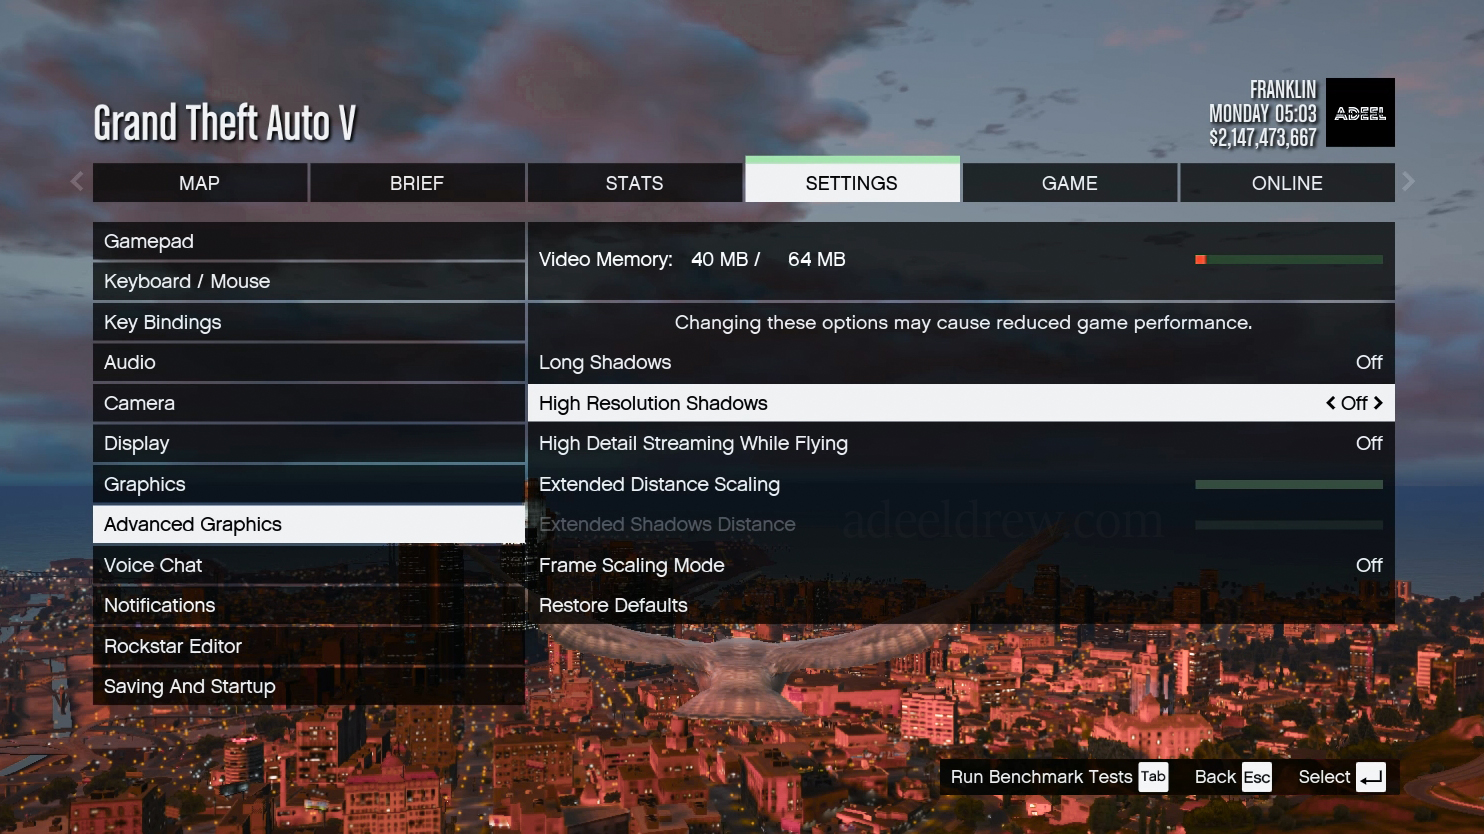 AdeelDrew - GTA 5: All Possible Custom Graphic Settings Files for Grand Theft Auto V gta 5,gta v,gta 5 online,gta,grand theft auto 5,gta 5 pc,gta 5 without graphic card,how to run gta 5 without graphics card,how to play gta 5 without graphic card and 4gb ram,gta 5 wins,how to play gta 5 without graphic card in windows 10,gta 6 playstation 5 graphics,gta online,gta 5 funny moments,gta 5 4gb ram no graphics card,gta 5 epic moments,gta 6 graphics,gta 5 mods,gta 5 funny,gta 5 fails,gta 5 worst graphics,gta 5 stunts,gta 5 graphics,gta 5 thug life,gta 5 pc graphics,gta 5 funny fails gta v low end pc,gta 5,gta v low end pc mod,gta v low end mod,gta v low end patch,gta v low end pc download,gta v low end pc gameplay,gta v low end pc settings,gta v for very low end pc,gta v hd low end mod,gta v for low end pc download,gta v lag fix low end pc,gta v extreme low end mod,gta 5 low end pc,gta v on low end pc gta v lag fix,gta v on low end pc gta v lag fix,gta v,low end pc,gta 5 low end pc 4gb ram,gta 5 lag fix low end pc,gta 5 lag fix,gta 5 on low end pc,low spec gamer gta v low end pc,gta v low end pc mod,gta v low end patch,gta v low end pc gameplay,gta v low end pc settings,gta v low end mod,gta v for low end pc download,gta v for very low end pc,gta v extreme low end mod,gta 5 low end pc,gta v hd low end mod,gta v lag fix low end pc,gta v low end pc download,gta 5,gta v on low end pc gta v lag fix,gta 5 lag fix low end pc,gta 5 low end pc settings,gta 5 low end pc 4gb ram,gta 5 on low end pc,low end pc,gta 5 fps boost low end pc  gta 5,gta 5 update,gta 5 dlc,gta 5 online update,gta 5 2021 dlc,gta 5 online 2021 dlc,gta 5 online 2021 update,gta 5 2021,gta 5 2021 update,gta 5 online,gta online update,gta online dlc,gta update,gta online 2021,gta online 2021 dlc,gta online,gta online 2021 update,gta v,techno gamerz gta 5,gta,gta 5 island dlc,gta 5 2020 dlc,gta 6,gta 5 2020 update,gta 5 mods,gta 5 online dlc,dlc gta 5 online,gta 5 funny,gta 6 news,gta 5 news,gta 5 stunts,mythpat gta 5,gta 5 next gen,gta 5 news mod gta 5,playing gta 5 without breaking any rules,how to play gta 5 without social club,how to play gta 5 without social club login,how to play gta 5 pc without social club,how to play gta 5 without social club account,how to play gta 5 offline without social club,how to play gta 5 offline mode without social club,how to play gta v without social club,playing gta 5,playing gta wihout breaking any rules,gta v,how to,how to run gta 5 without social club how to download gta 5 in android,gta 5,how to download gta 5 in android 1gb ram,how to download gta 5 on mobile,how to download gta 5 in android 2020,how to download gta 5,how to download gta 5 in mobile,how to download gta 5 for android 100% real with live proof,how do you get gta 5 on android,how do you download gta 5 on mobile,how can i download gta 5 for free on android,how to download gta5 on android,gta 5 mobile,gta 5 download,how to download gta 5 for android,how to download gta 5 mods